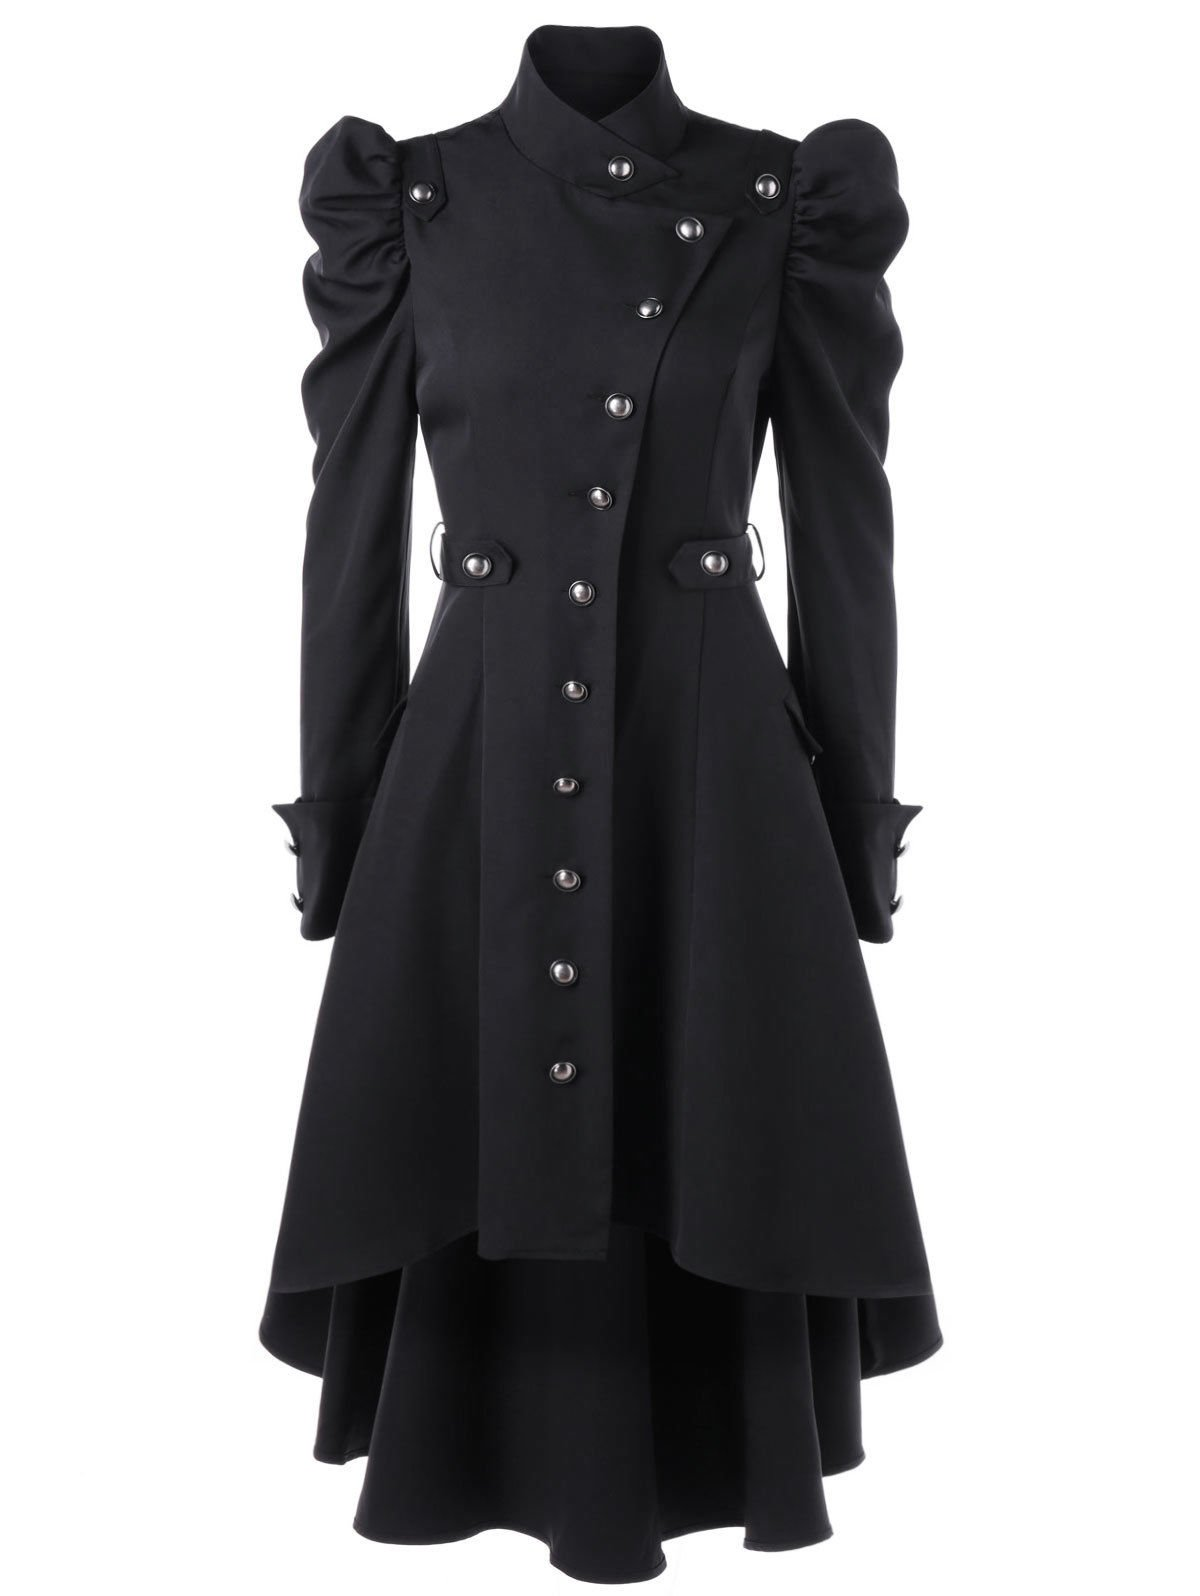 Beebeauty Gothic Vintage Womens Steampunk Victorian Swallow Tail Long Trench Coat Jacket (M, Black)